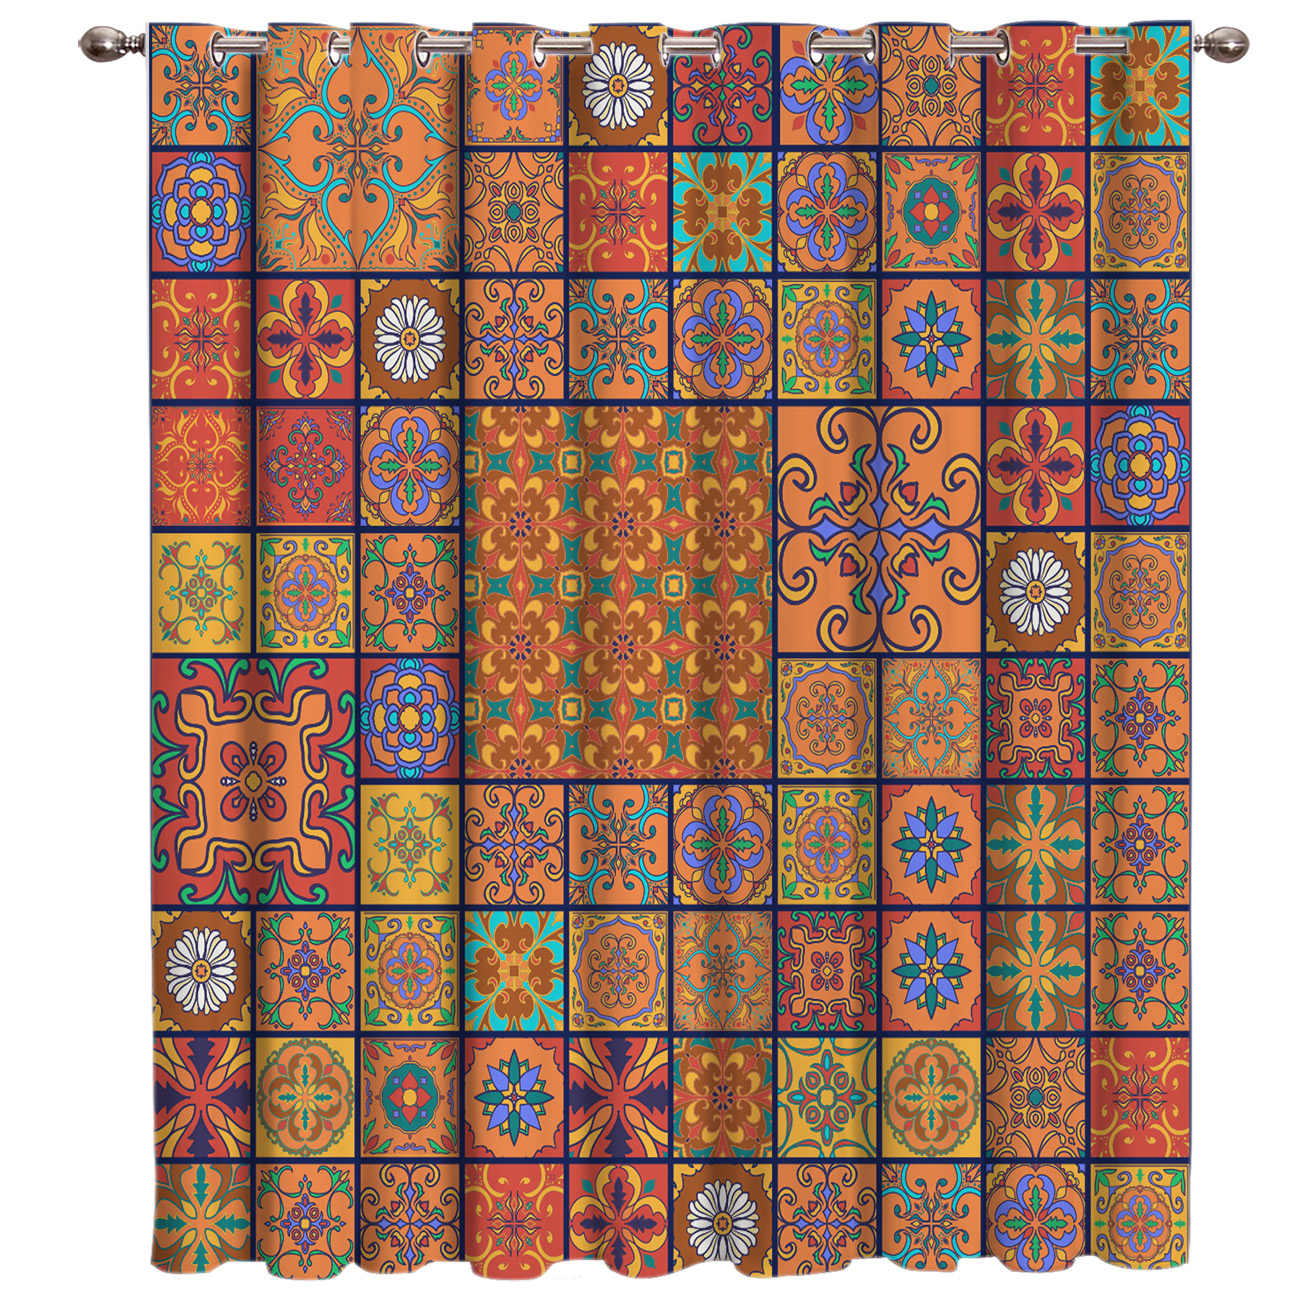 Retro Ethnic Square Pattern Room Curtains Large Window Window Blinds Living Room Blackout Outdoor Kitchen Indoor Decor Curtain